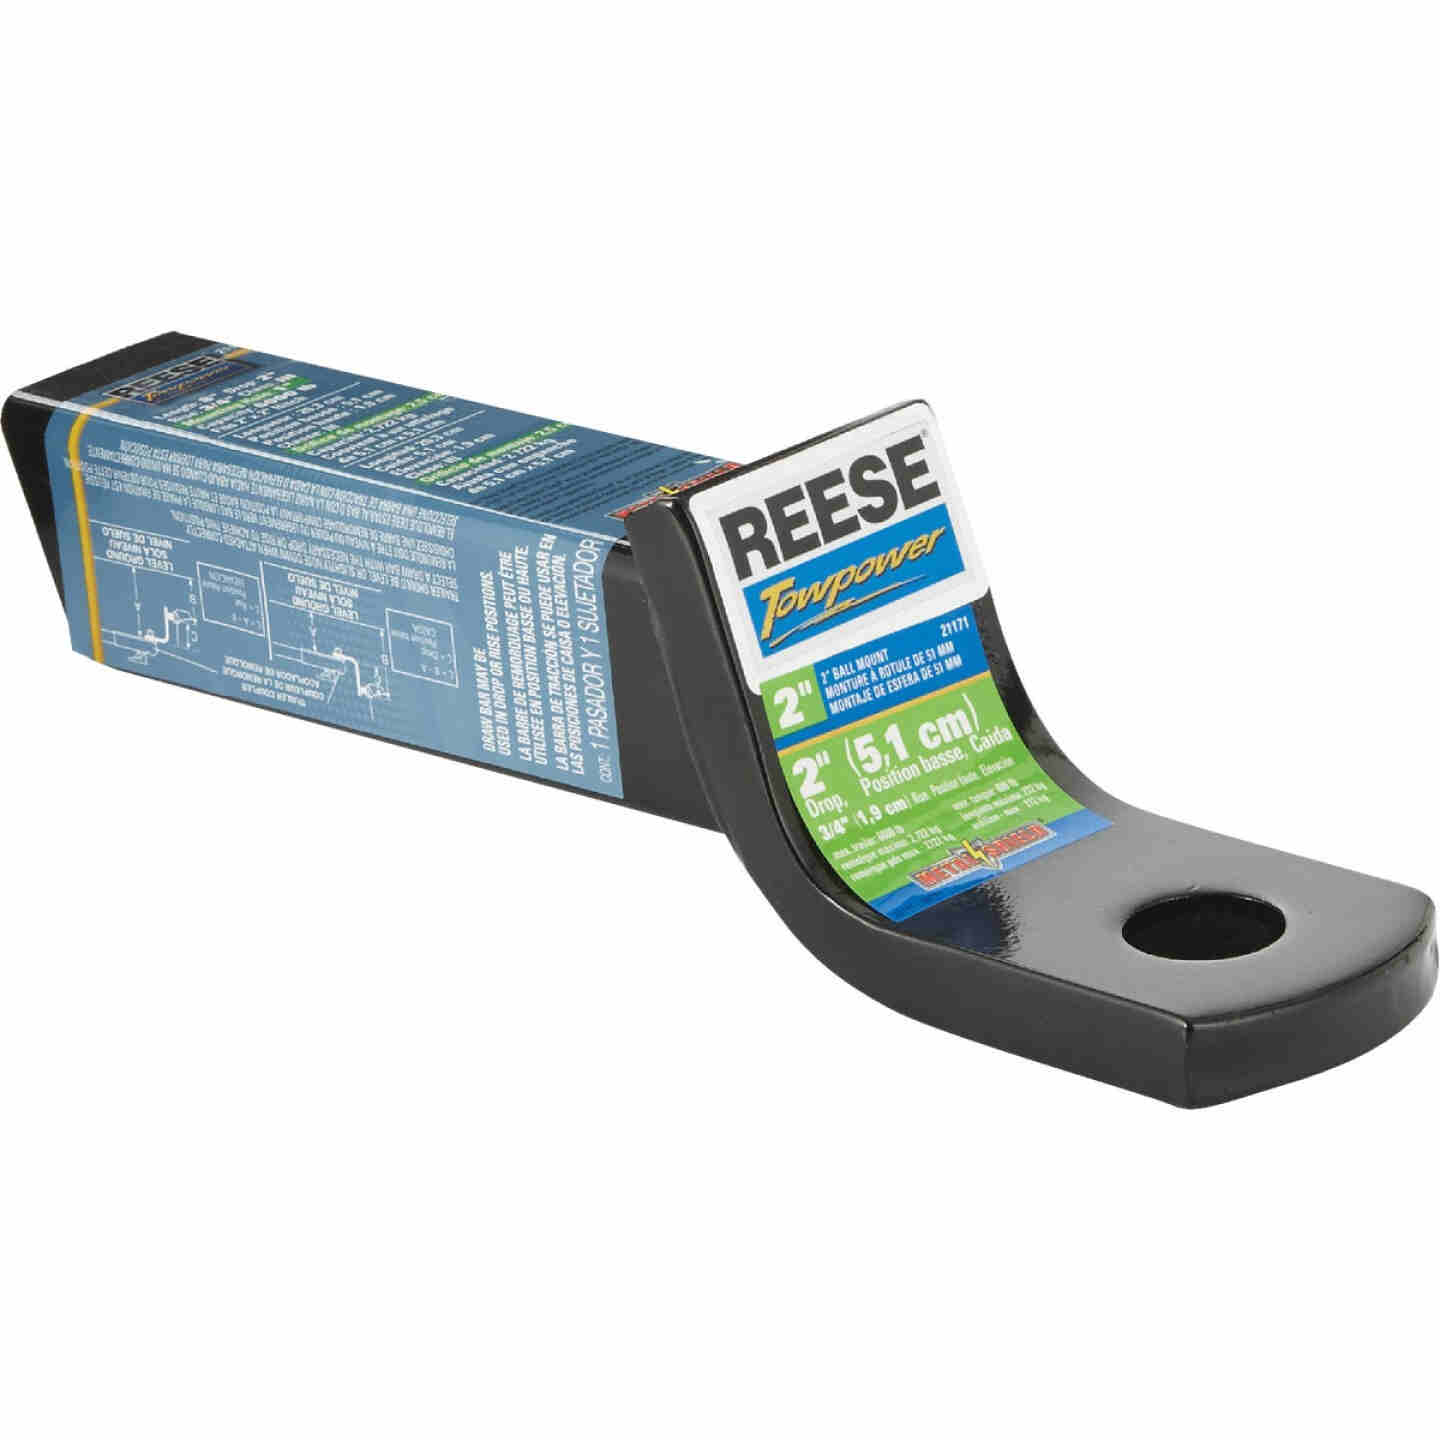 Reese Towpower 3/4 In. x 2 In. Drop Standard Hitch Draw Bar Image 1